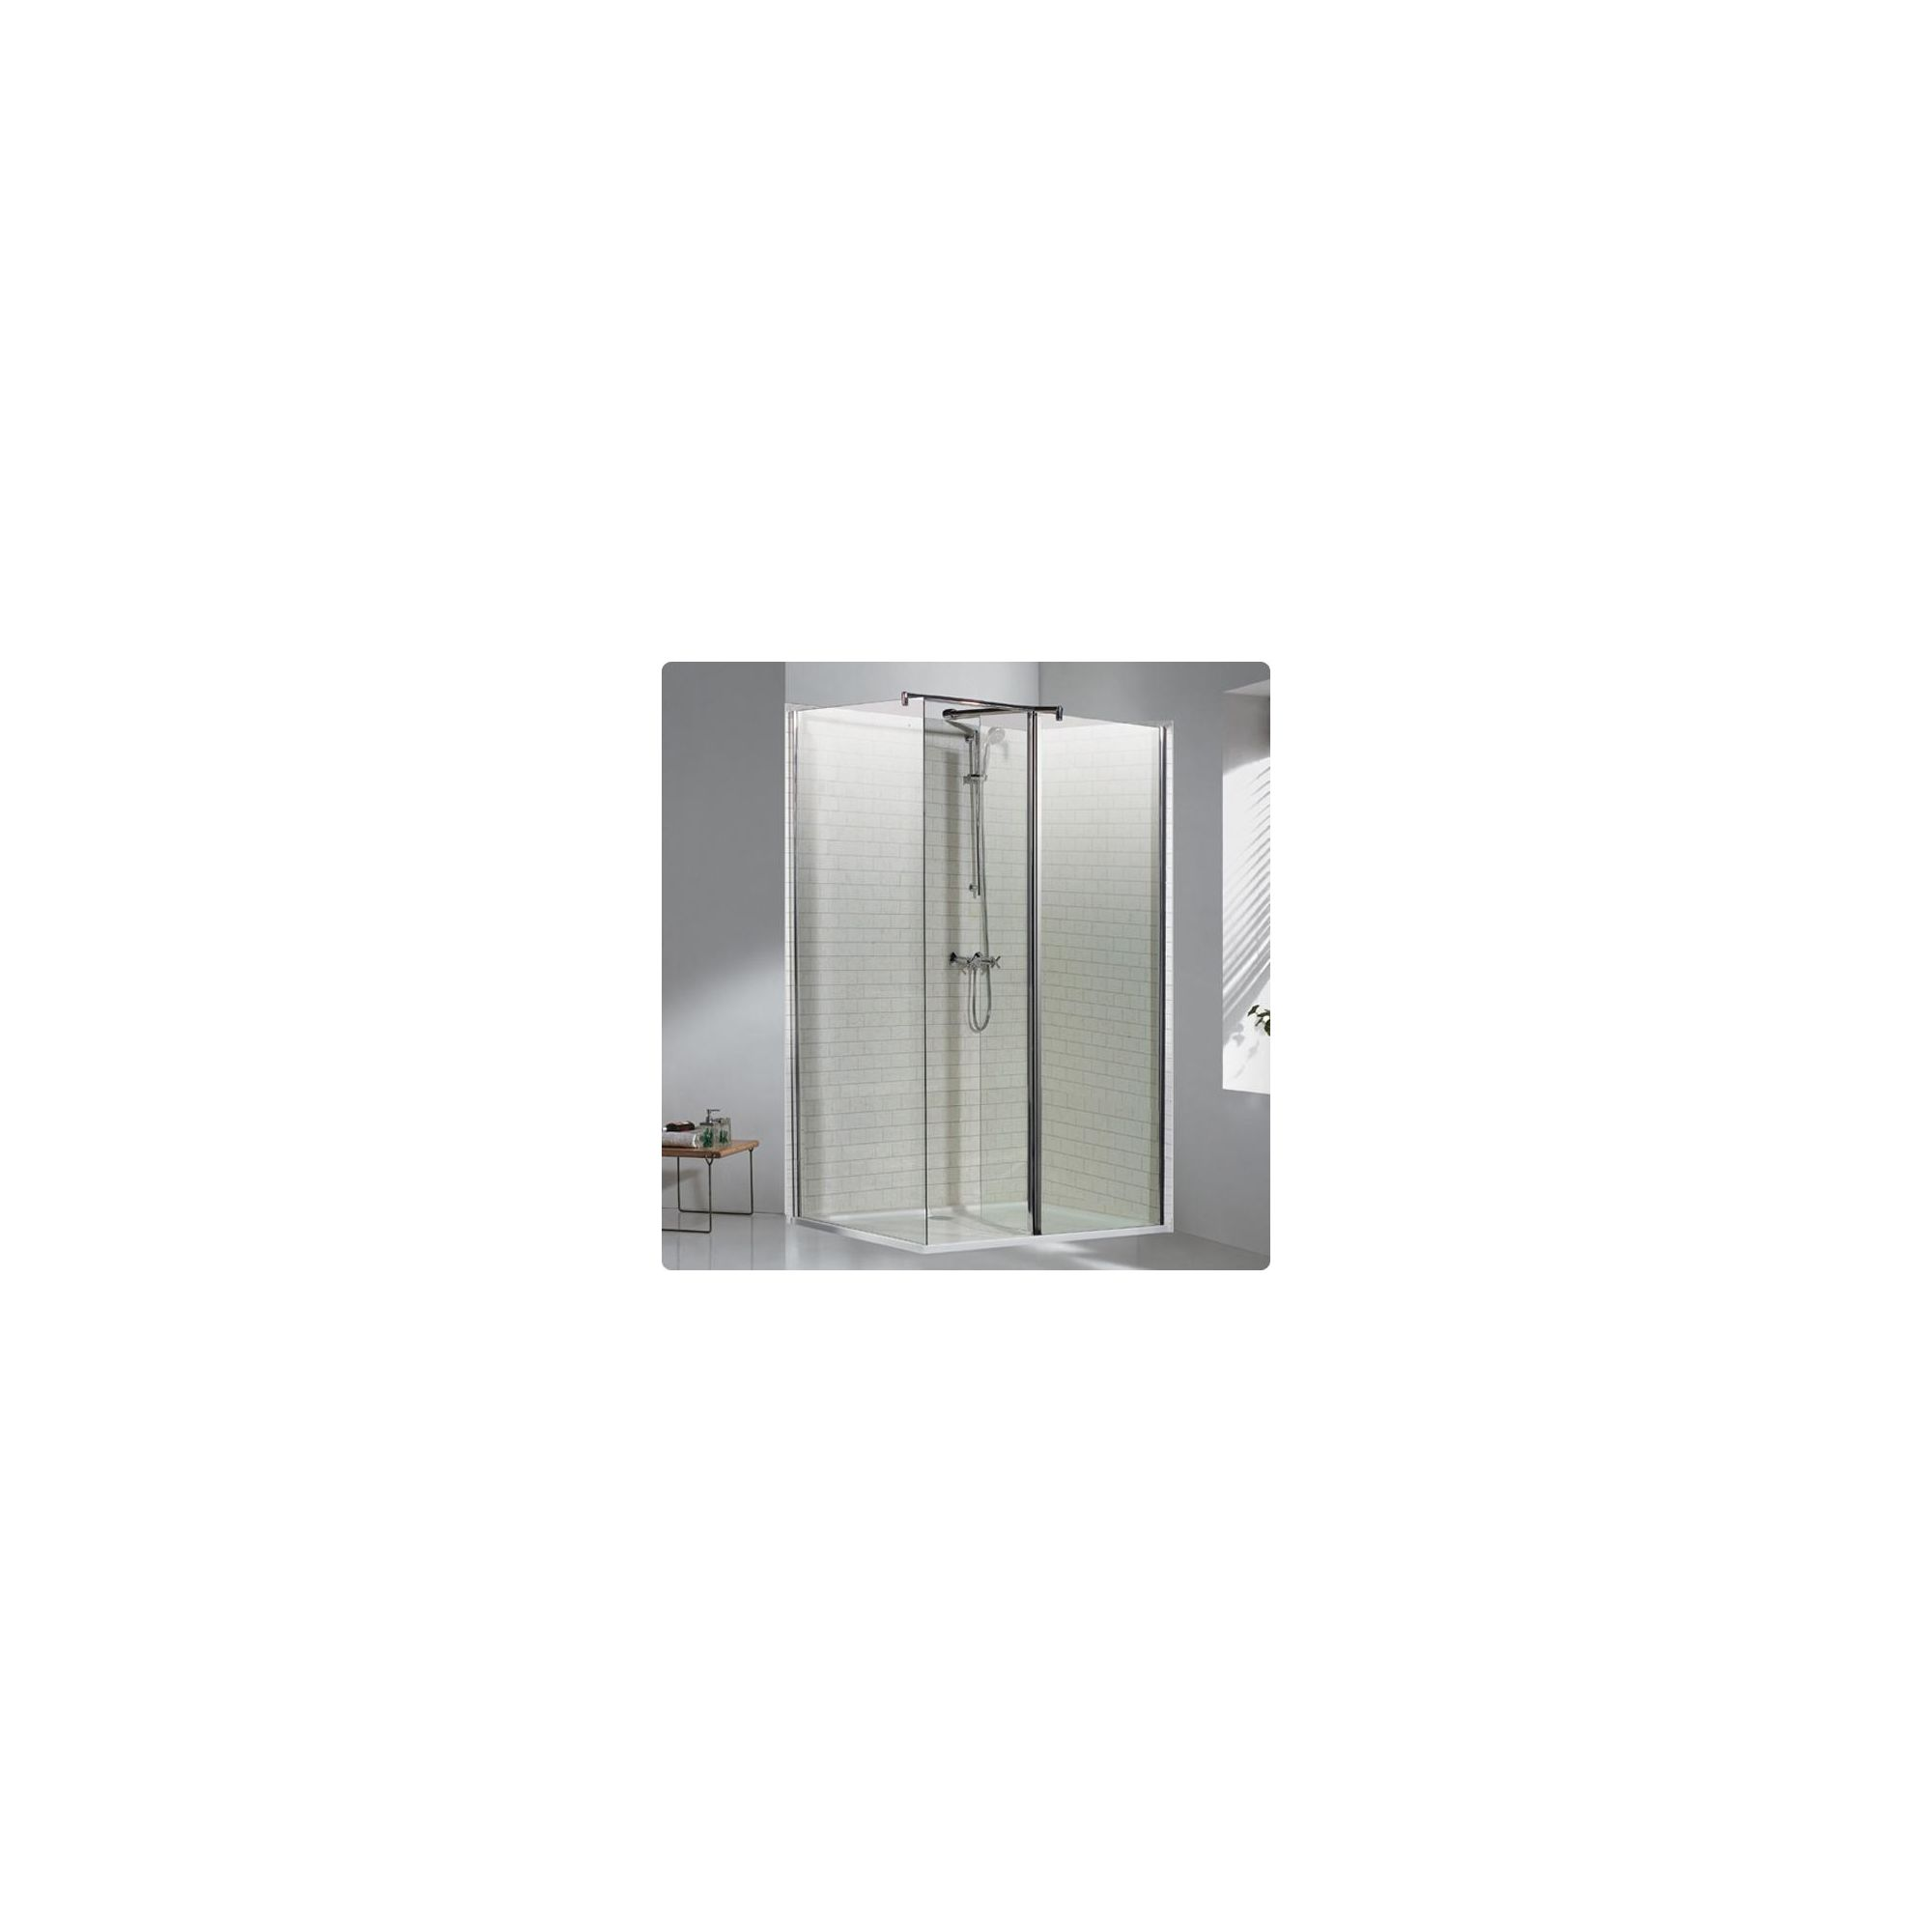 Duchy Choice Silver Walk-In Shower Enclosure 1700mm x 900mm (Complete with Tray), 6mm Glass at Tesco Direct